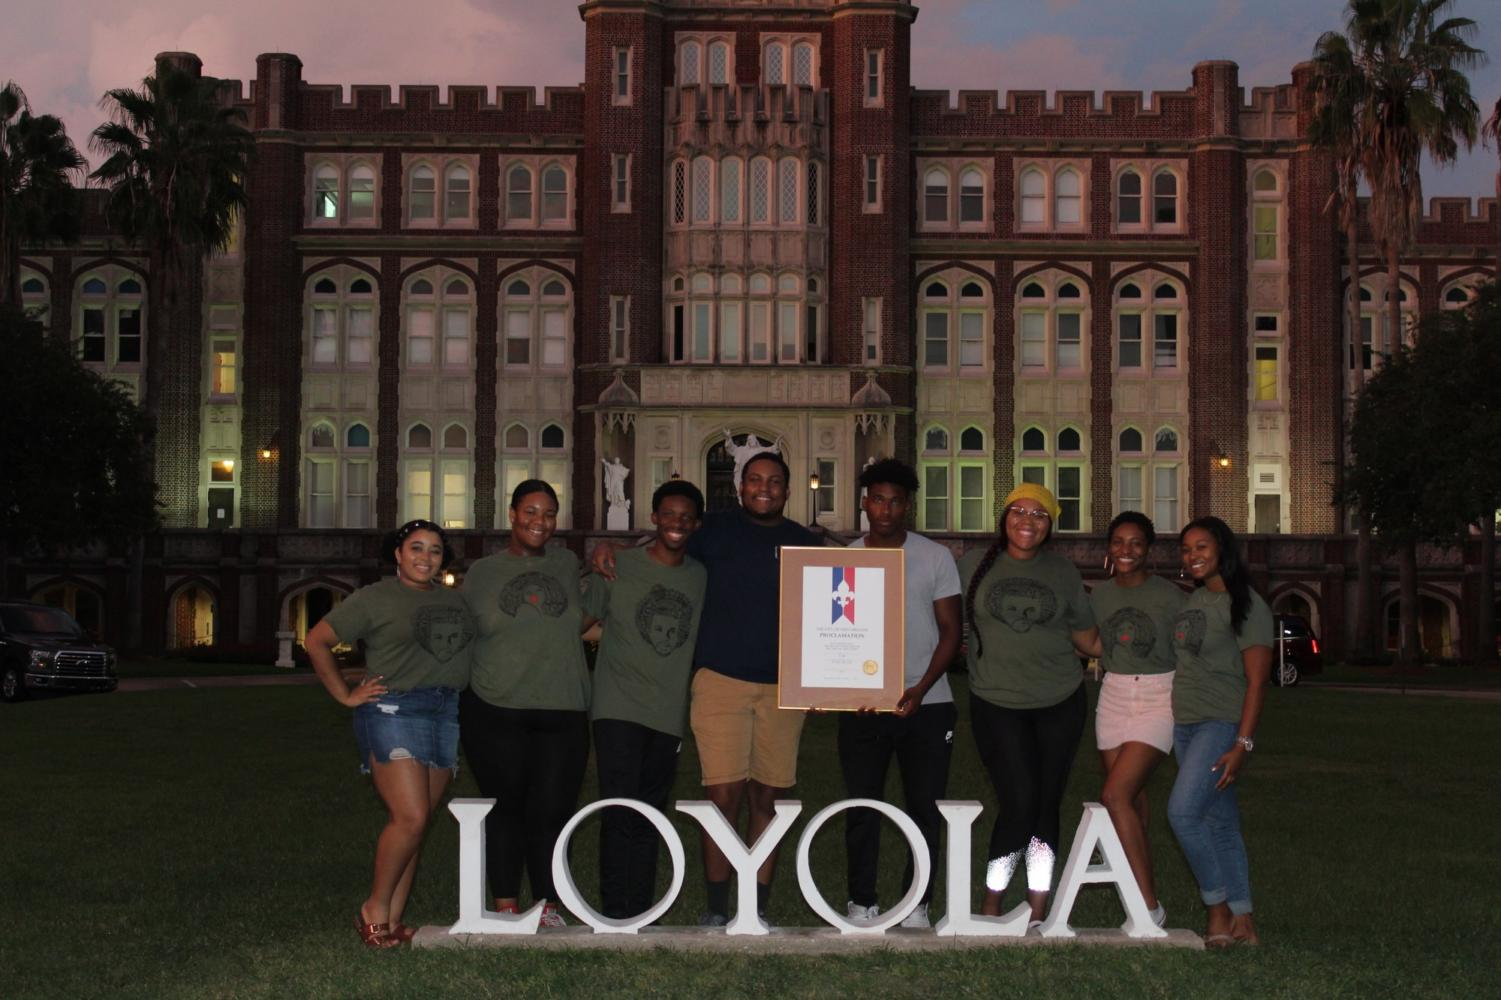 Executive members of Black Student Union join together in front of Loyola to celebrate the organization's 50th anniversary. Black Student Union Executive Board: (left to right) Brealauna Leassear, Logan Jackson, Roshae Gibson, David Collins, Miles Clark, Brionna Adams, Jenkins Brady, and Sterling Holmes. Photo credit: Erin Haynes